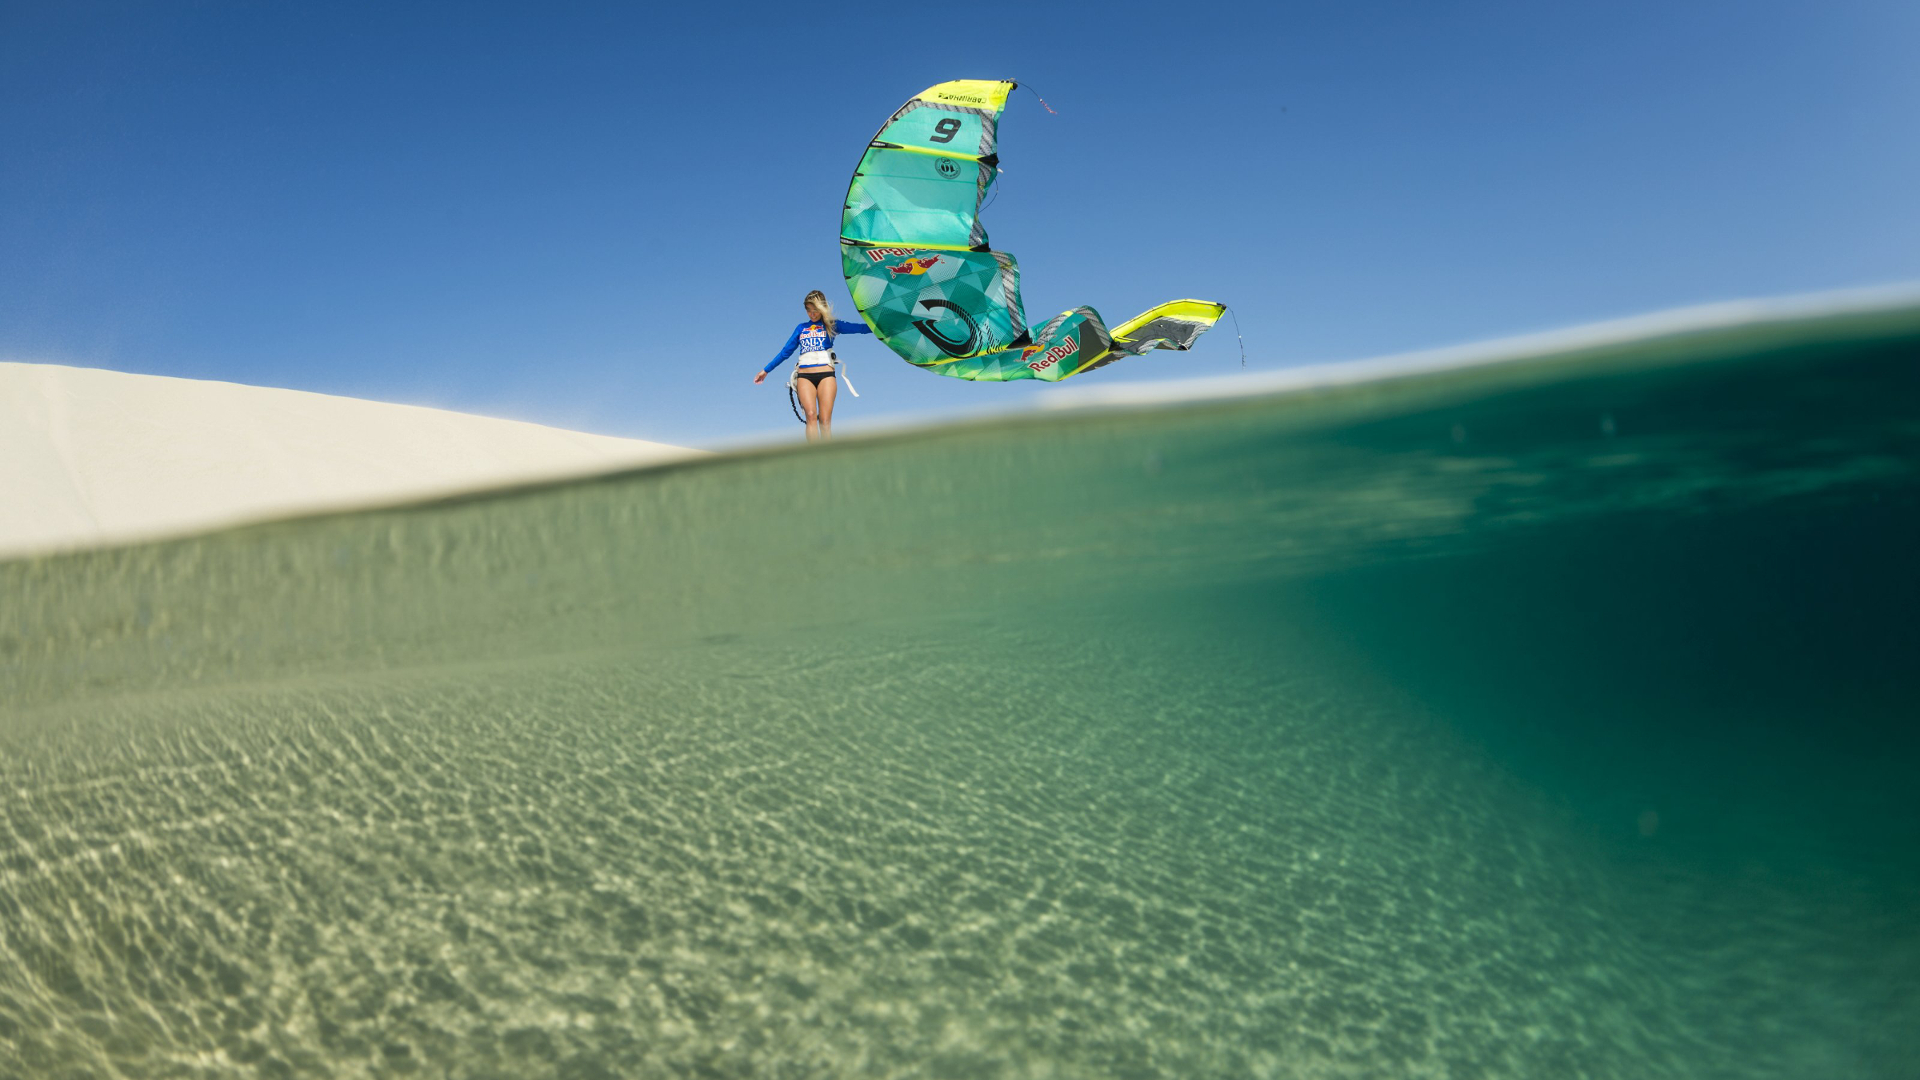 kitesurf wallpaper image - Susi Mai just hanging out with her Cabrinha kite on a sand dune - in resolution: High Definition - HD 16:9 1920 X 1080